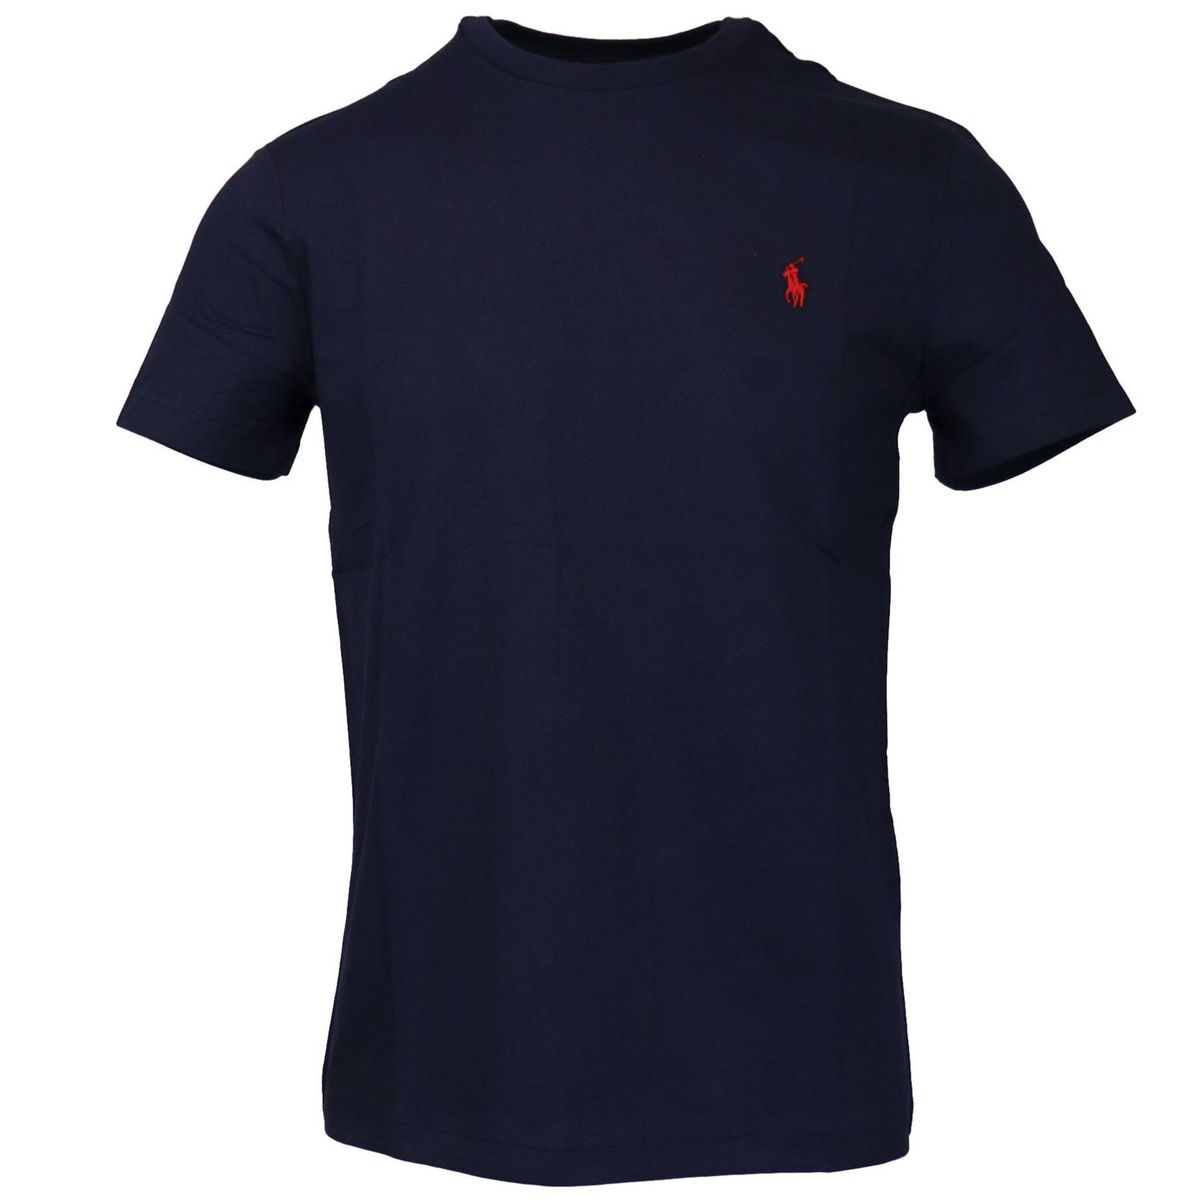 Cotton T-shirt with contrasting logo embroidery Ink Polo Ralph Lauren